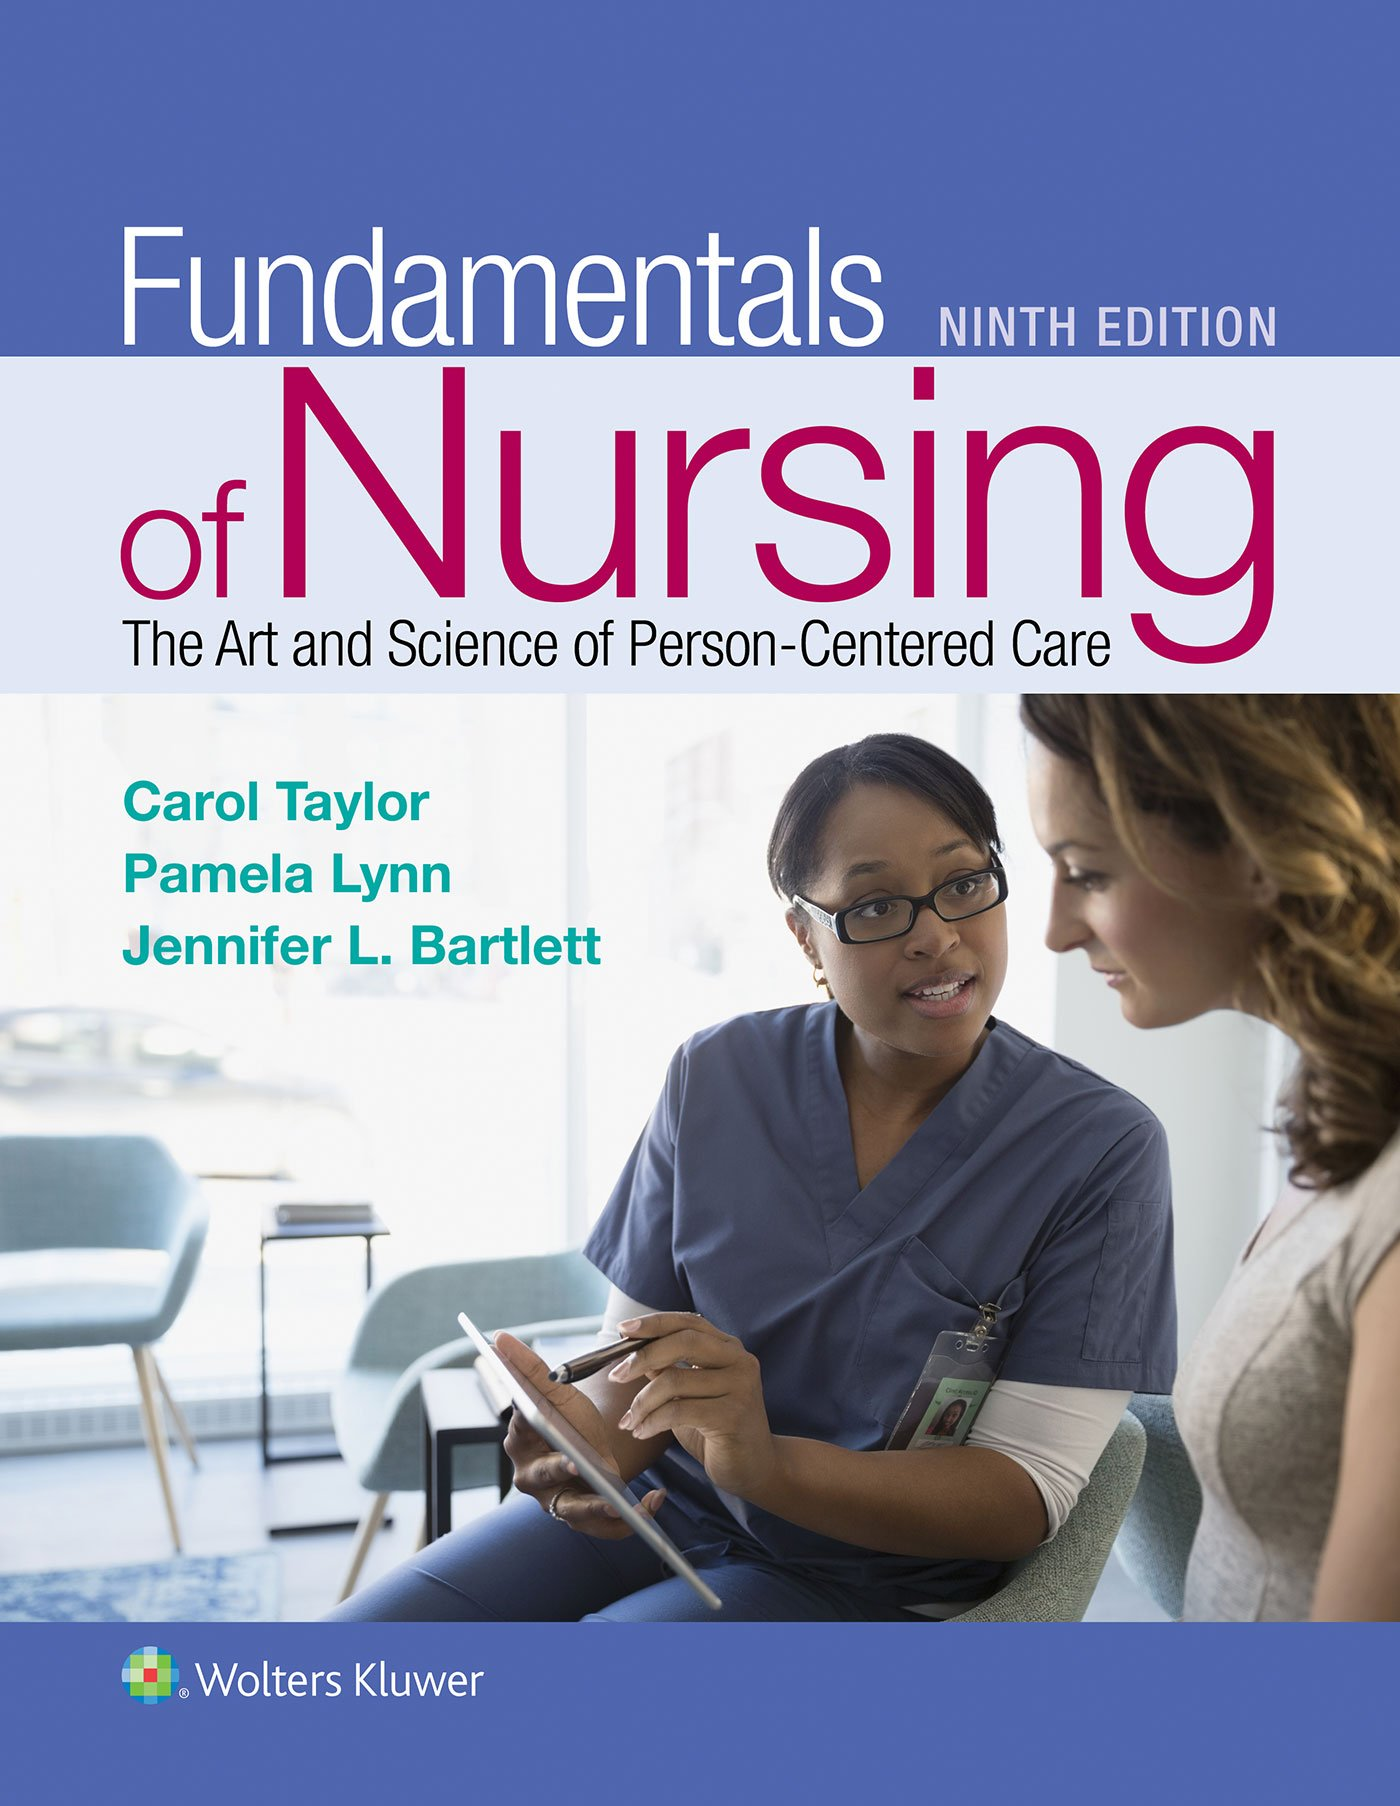 Fundamentals of Nursing: The Art and Science of Person-Centered Care by LWW